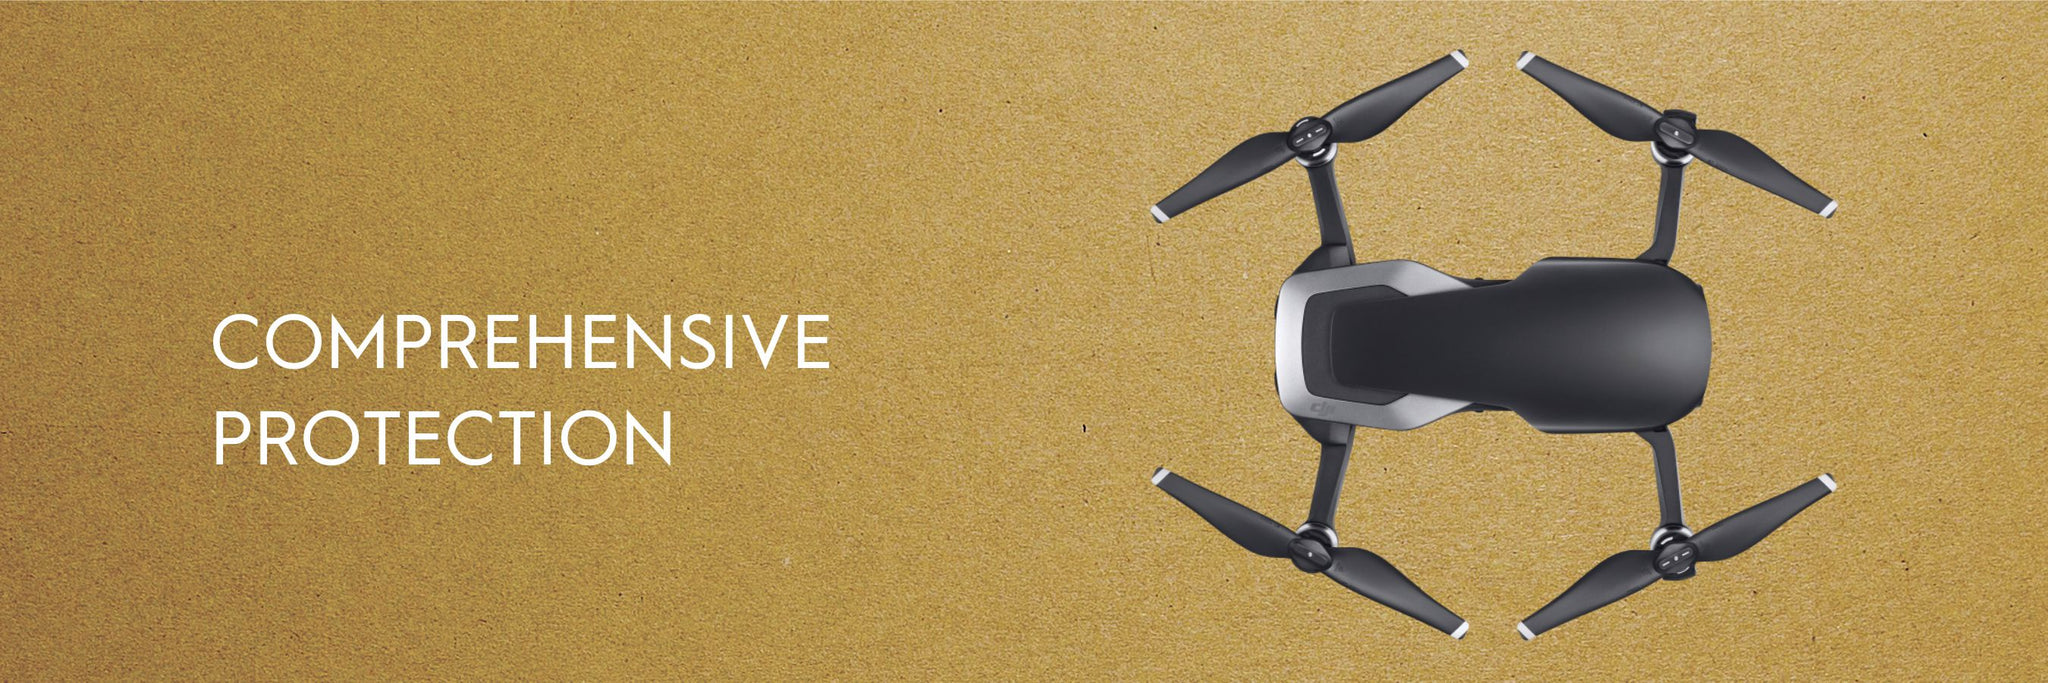 DJI Care Refresh-Mavic Air